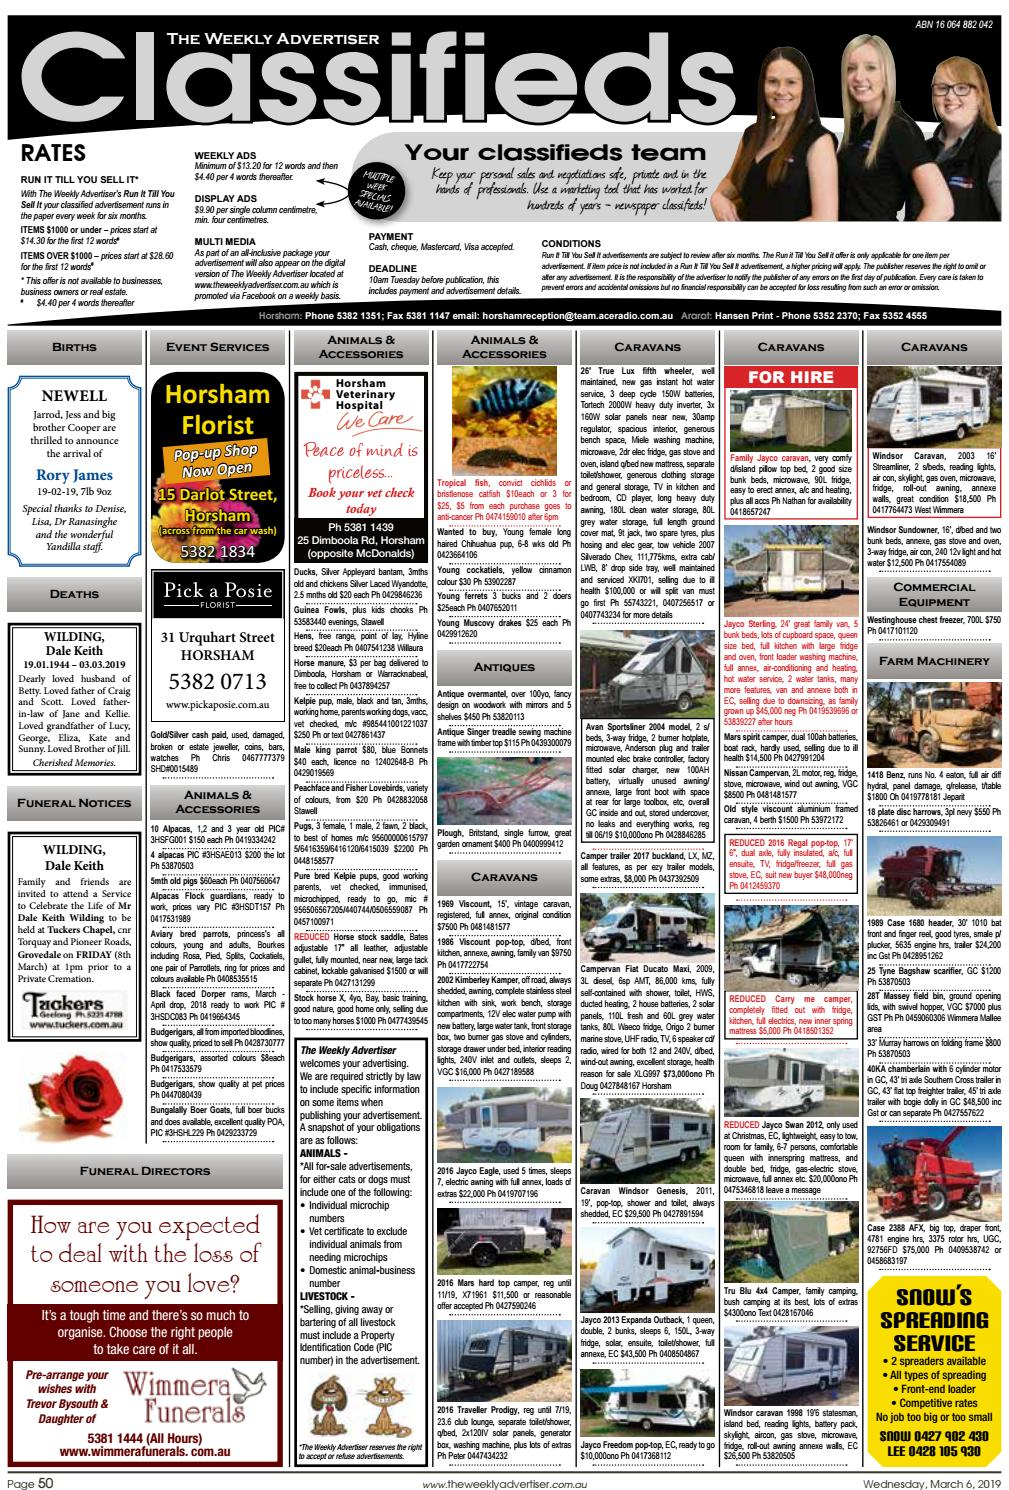 The Weekly Advertiser - Wednesday, March 6, 2019